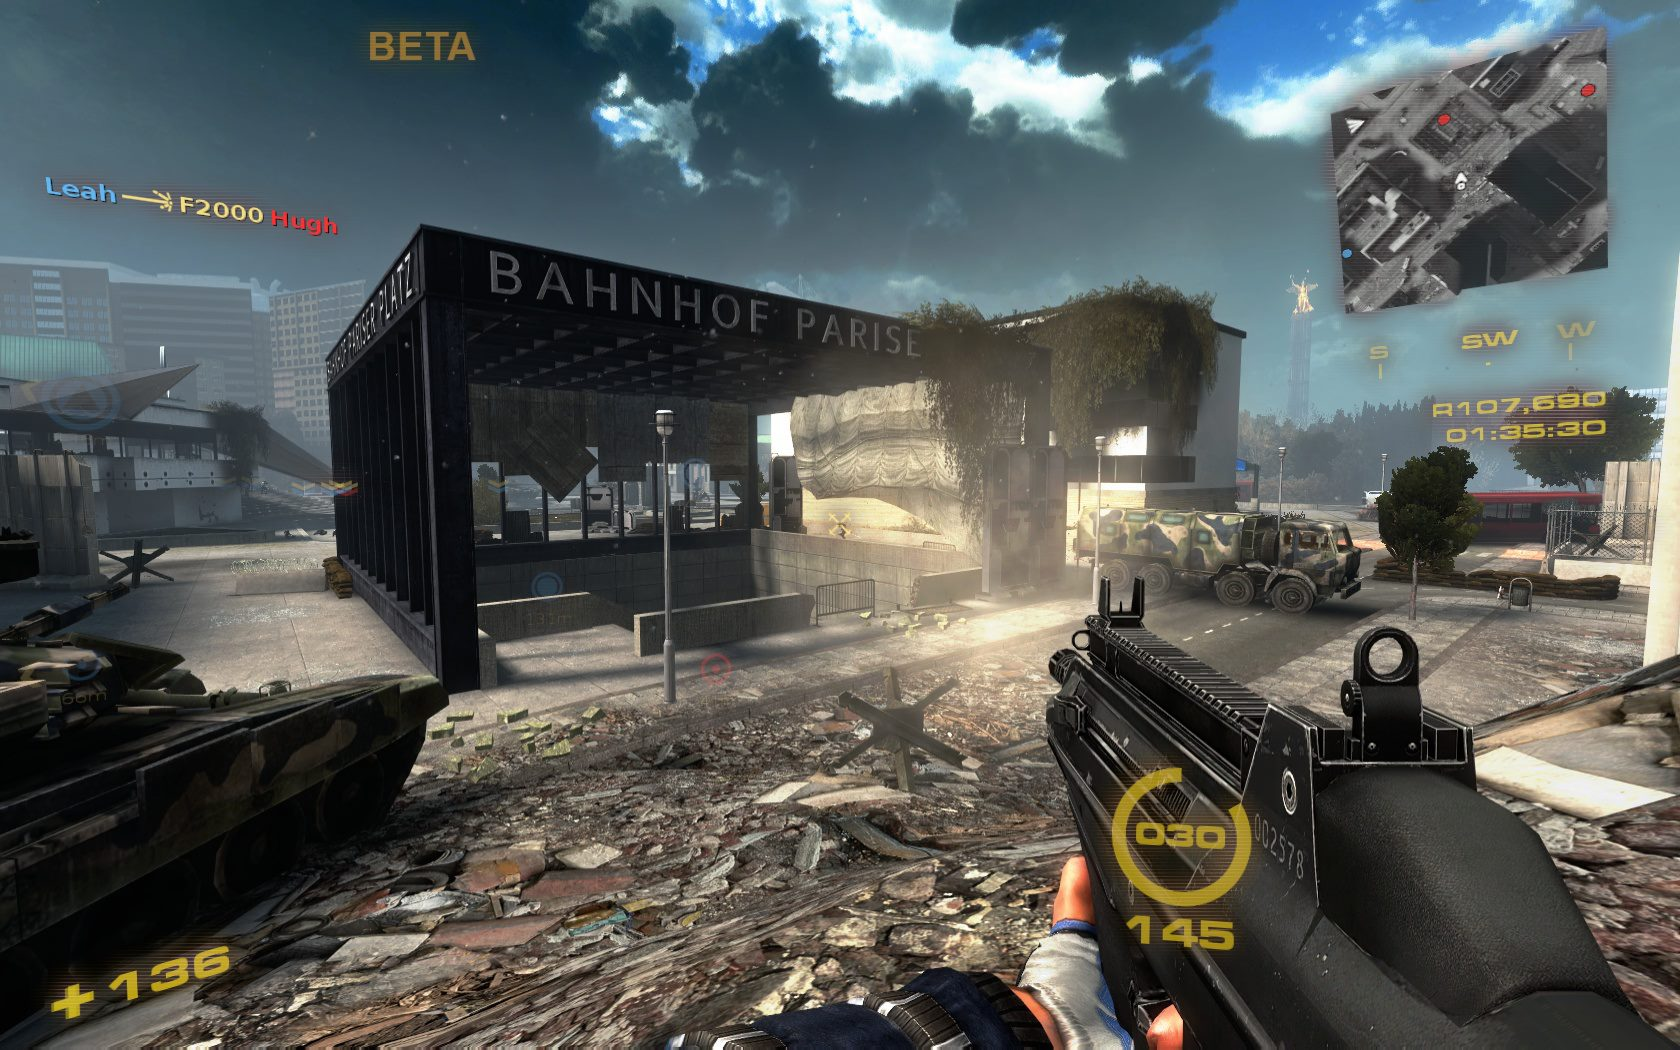 An example of a shooter game